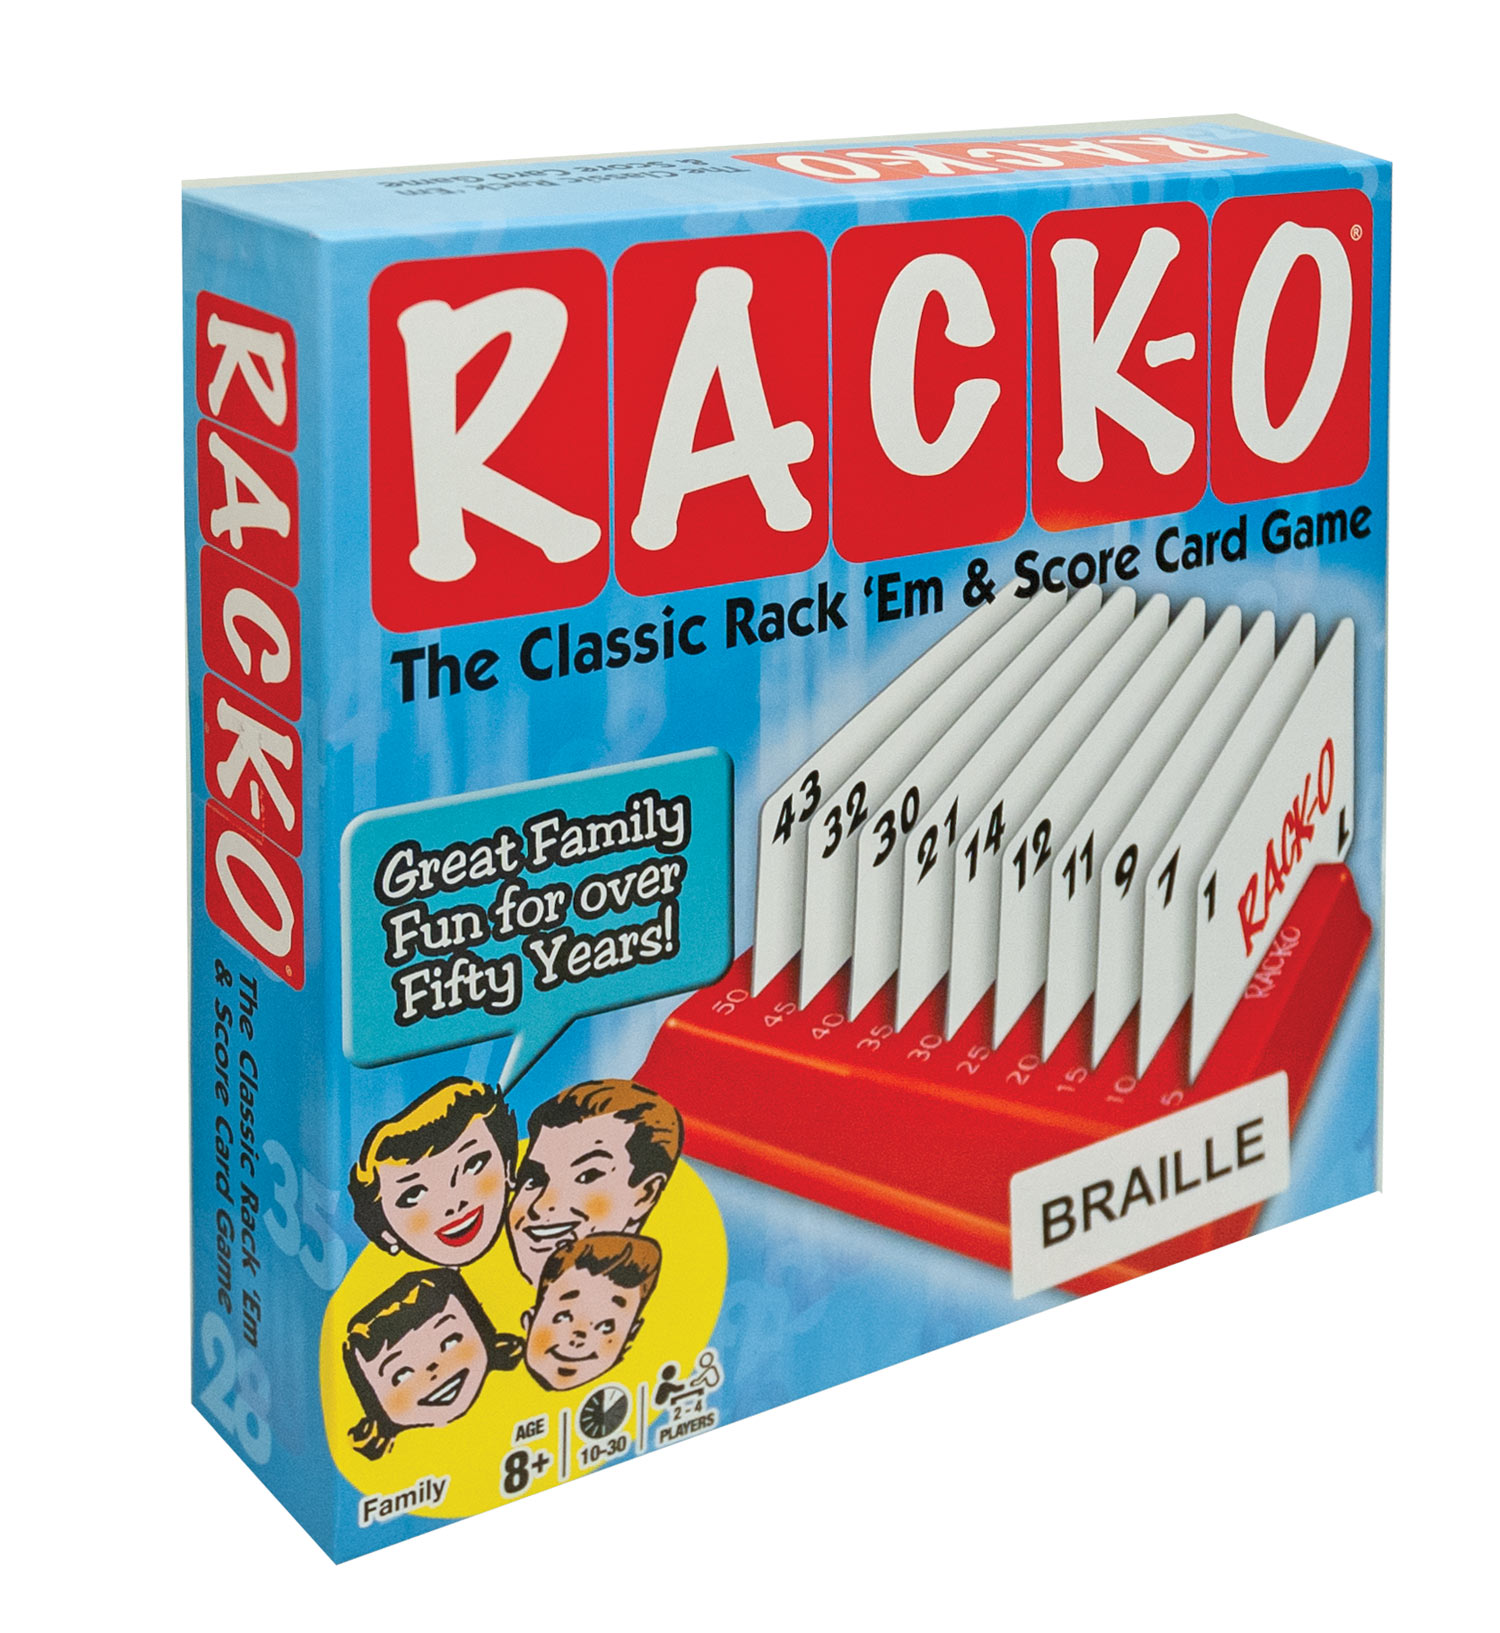 RACKO Card Game - Modified with Brailled Cards